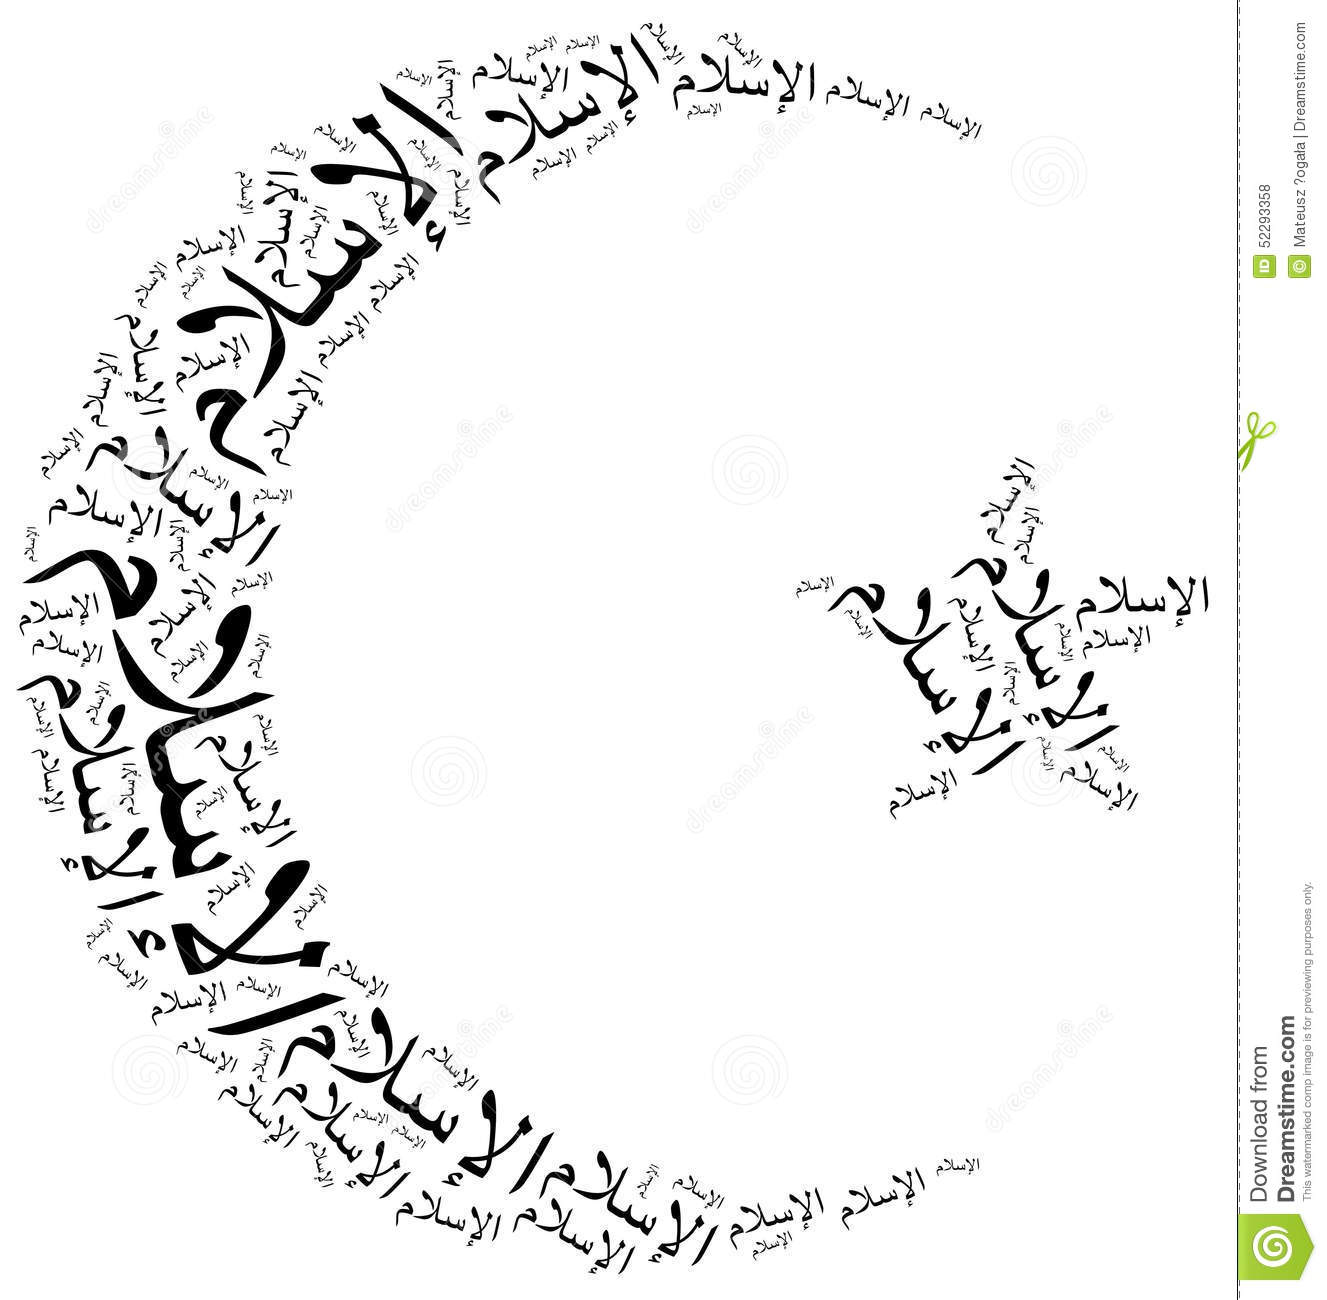 Symbol Of Islam Religion  Word Cloud Illustration  Stock